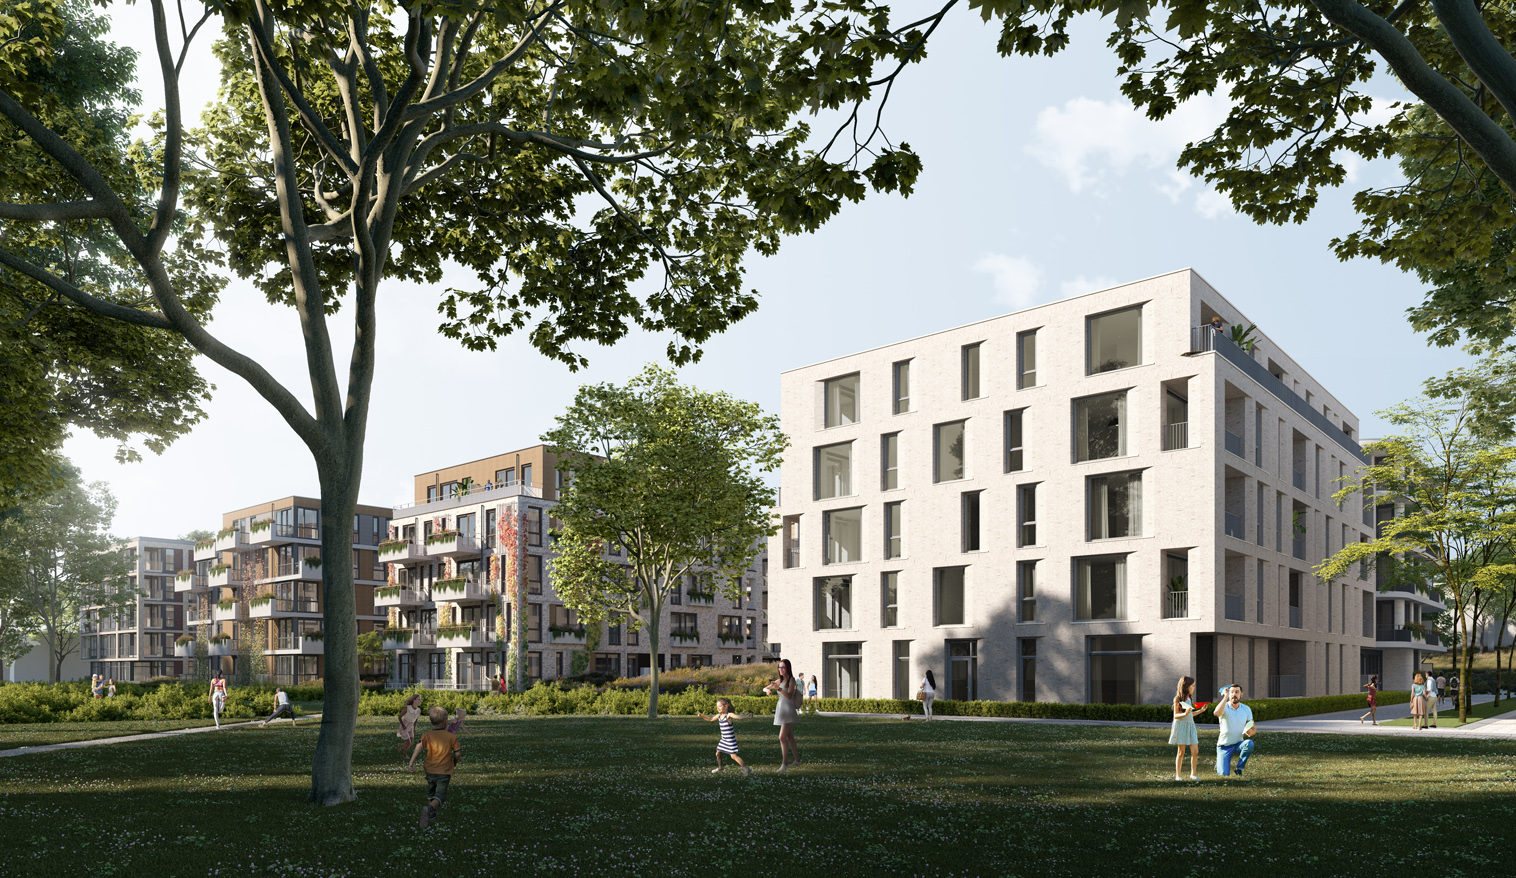 04 OPL Architecten_Cartesius Utrecht-1516×878-72dpi